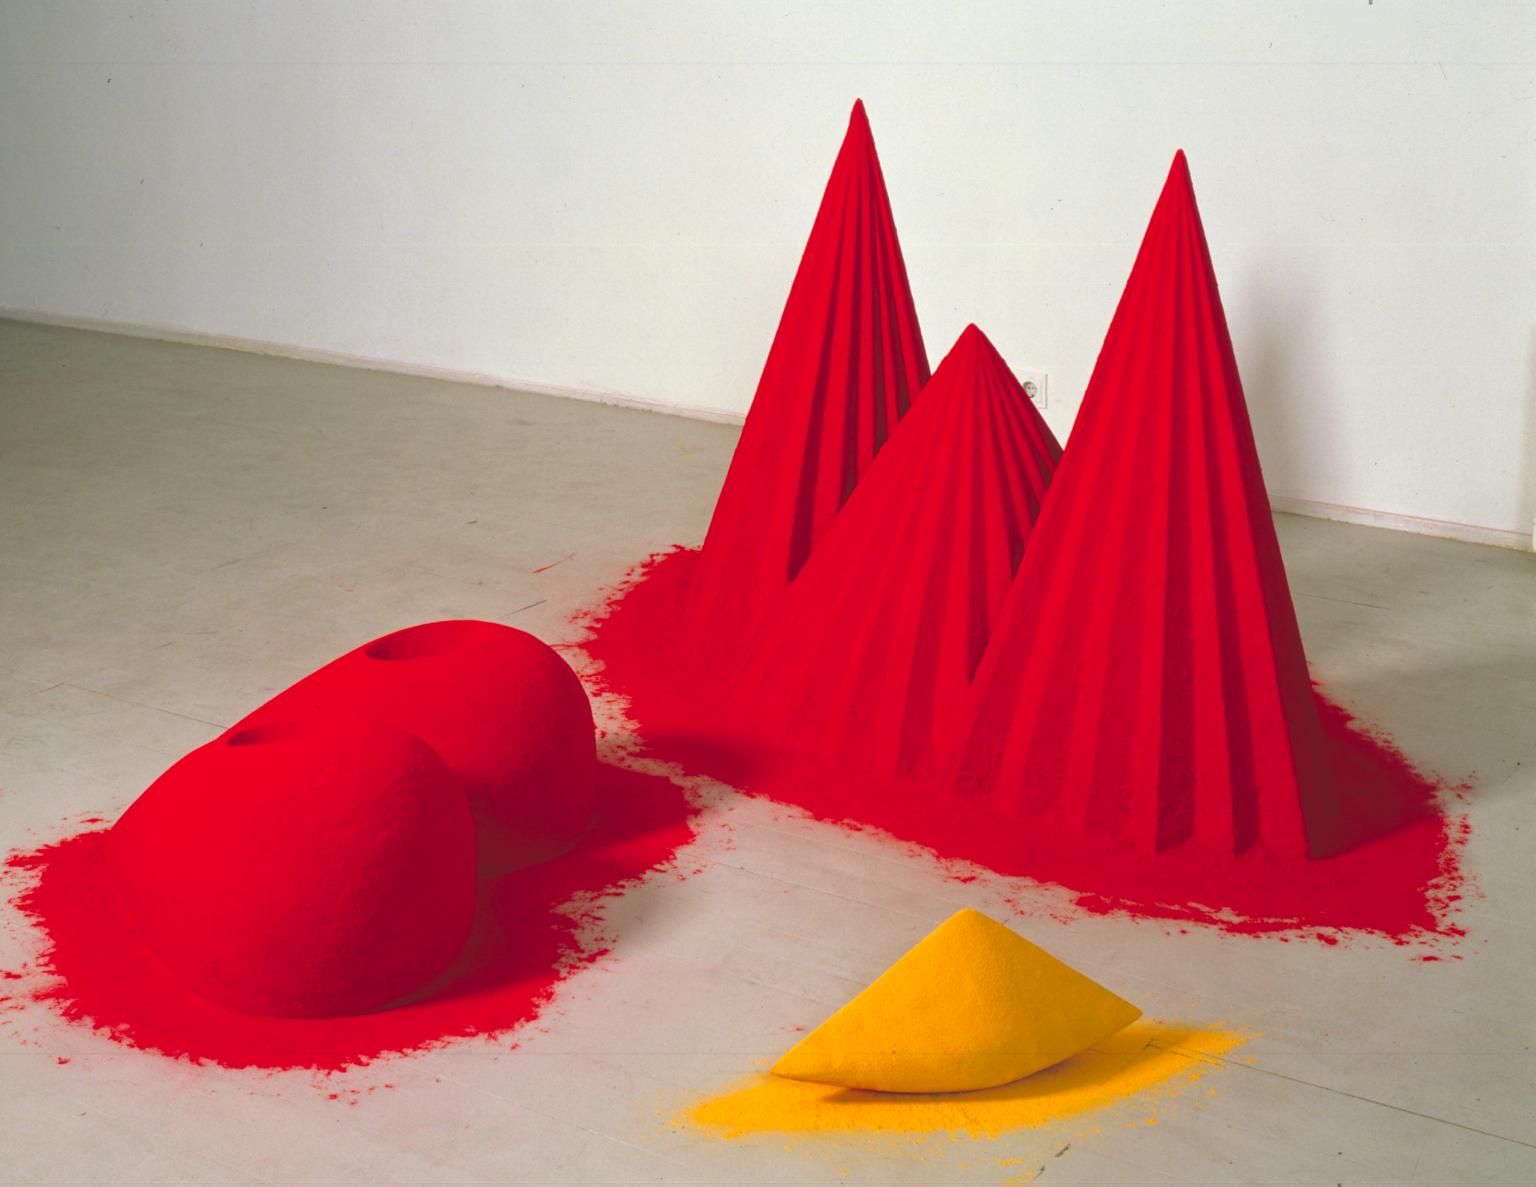 As if to Celebrate, I Discovered a Mountain Blooming with Red Flowers 1981 by Anish Kapoor born 1954